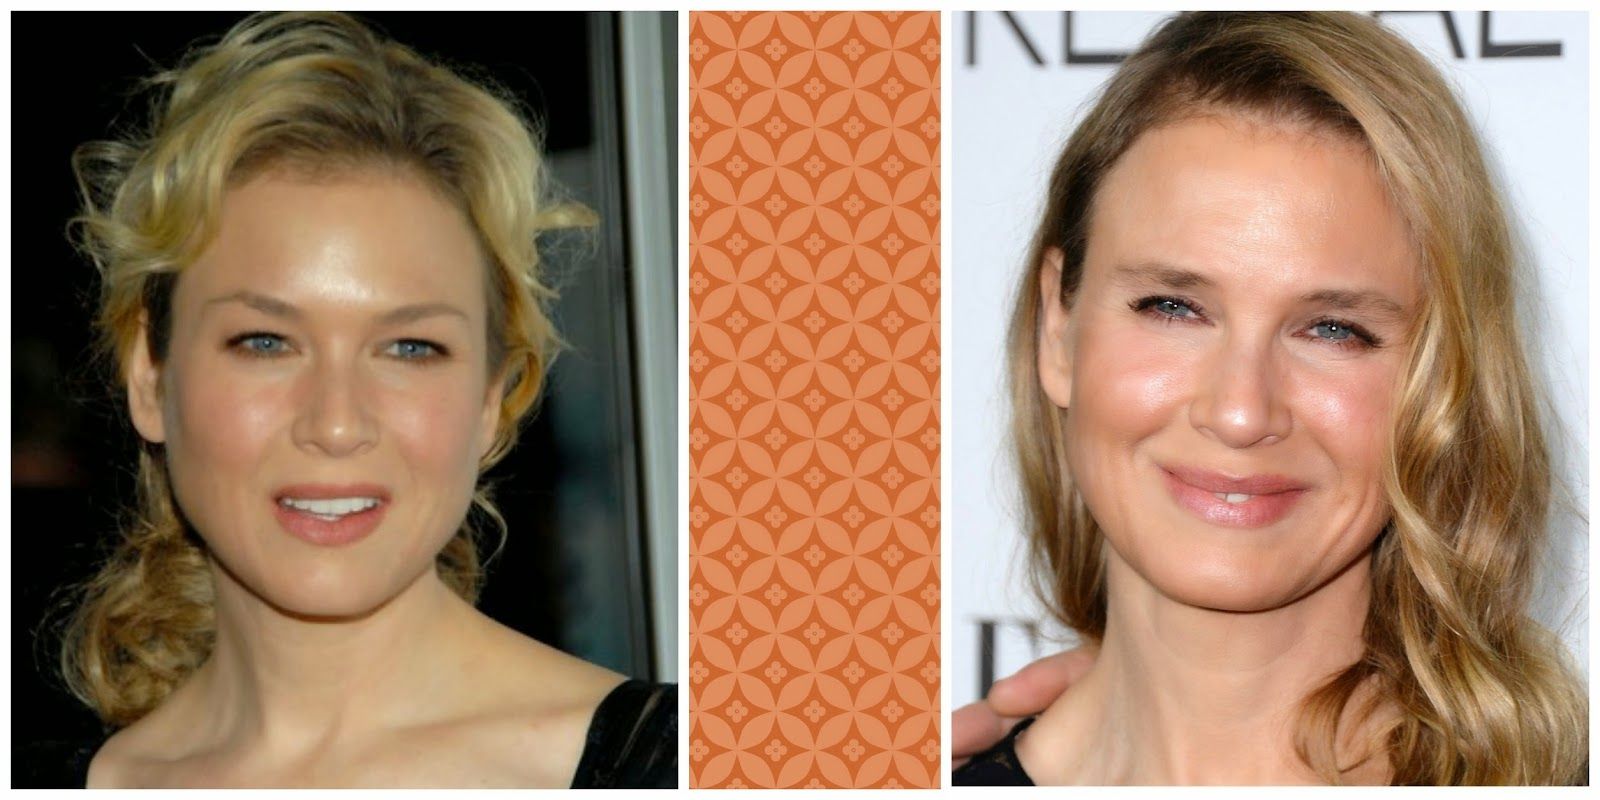 René Bridget Jones edad bisturí